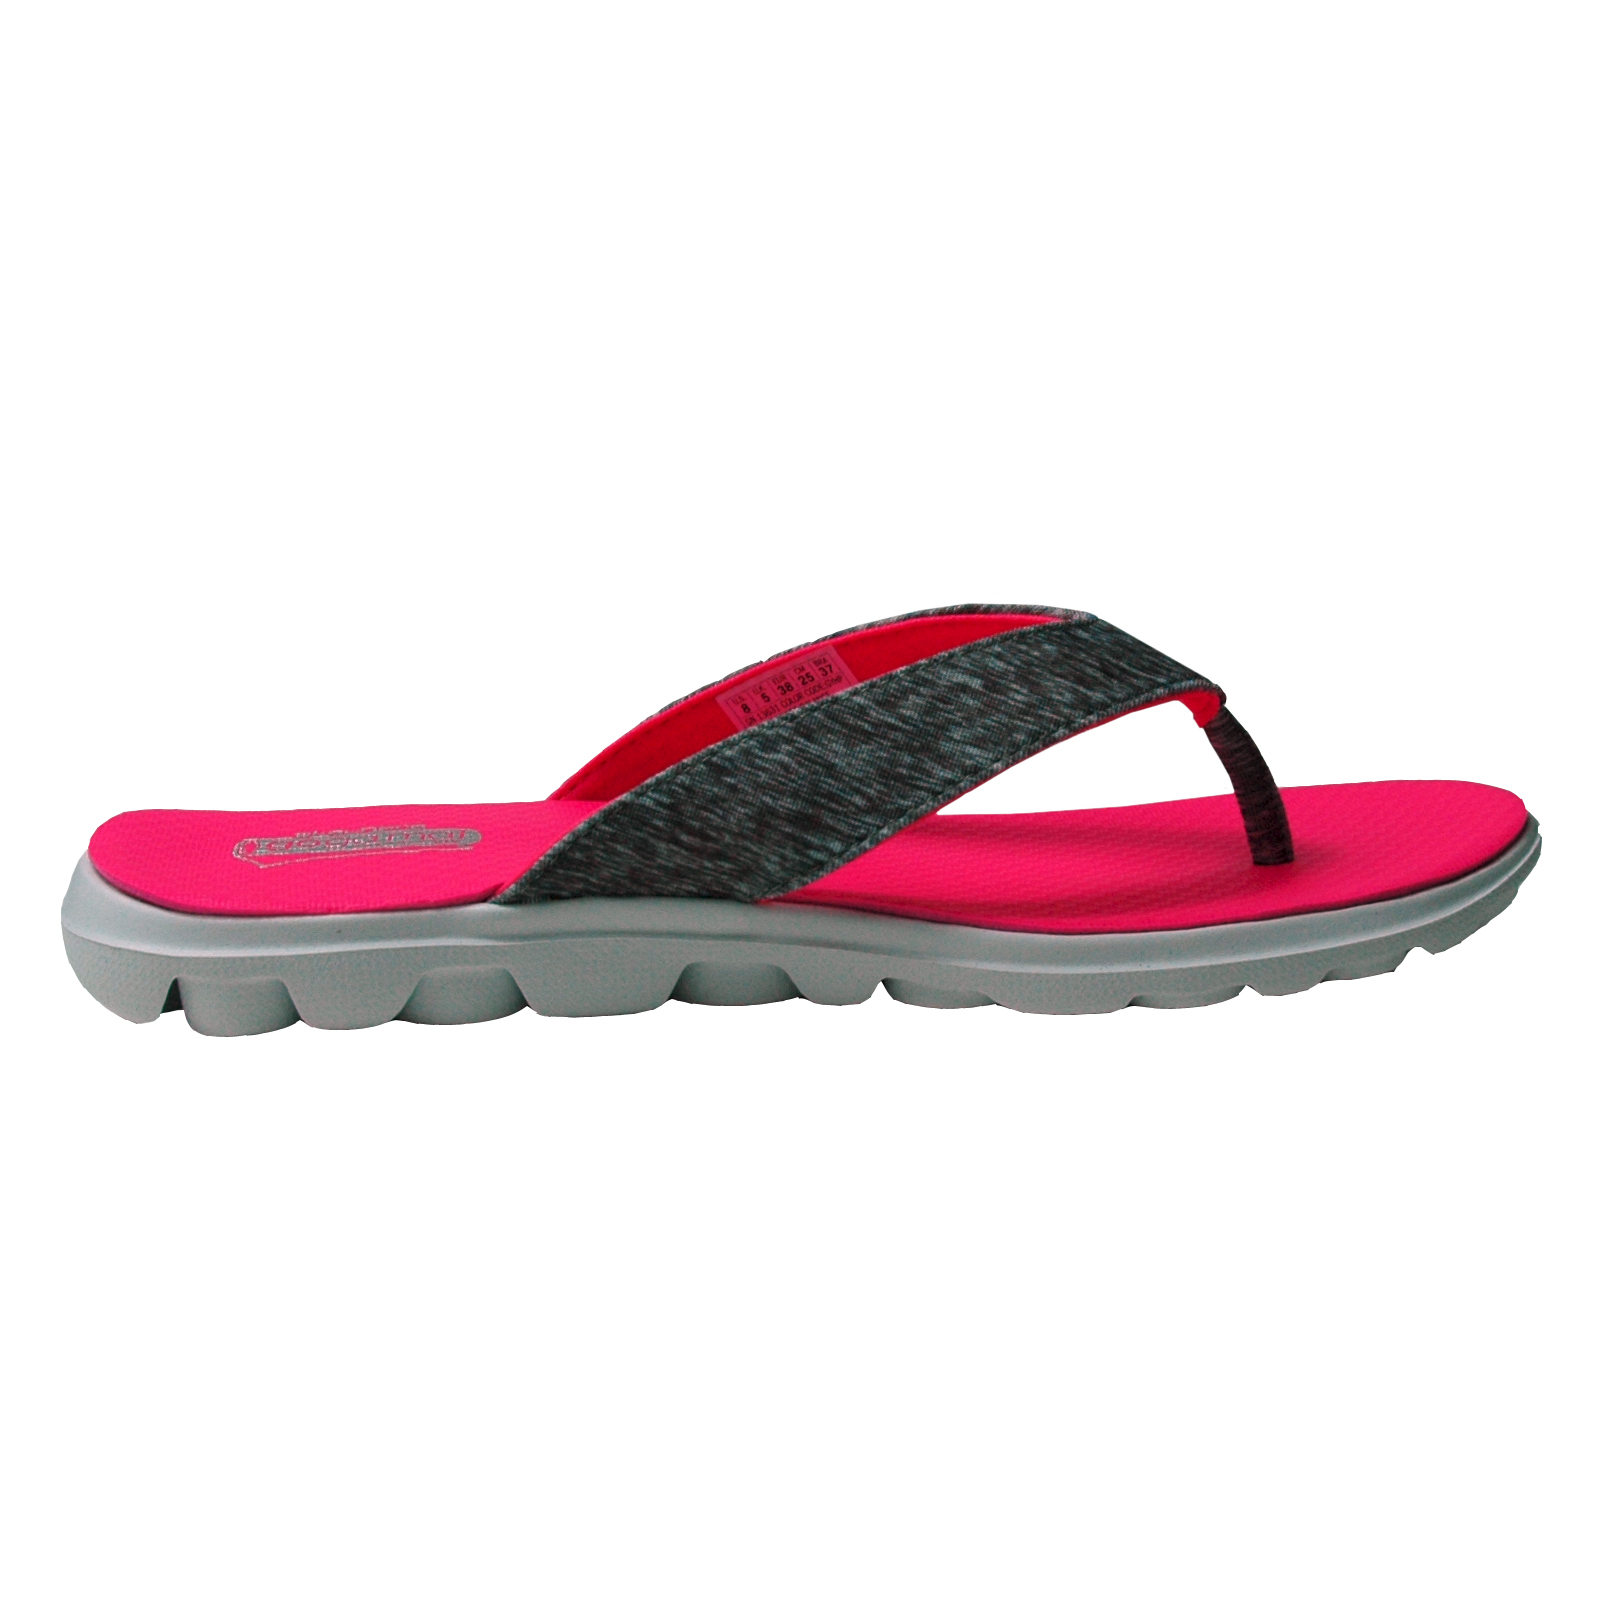 5ed674bc562a8 skechers ladies flip flops for sale   OFF51% Discounts